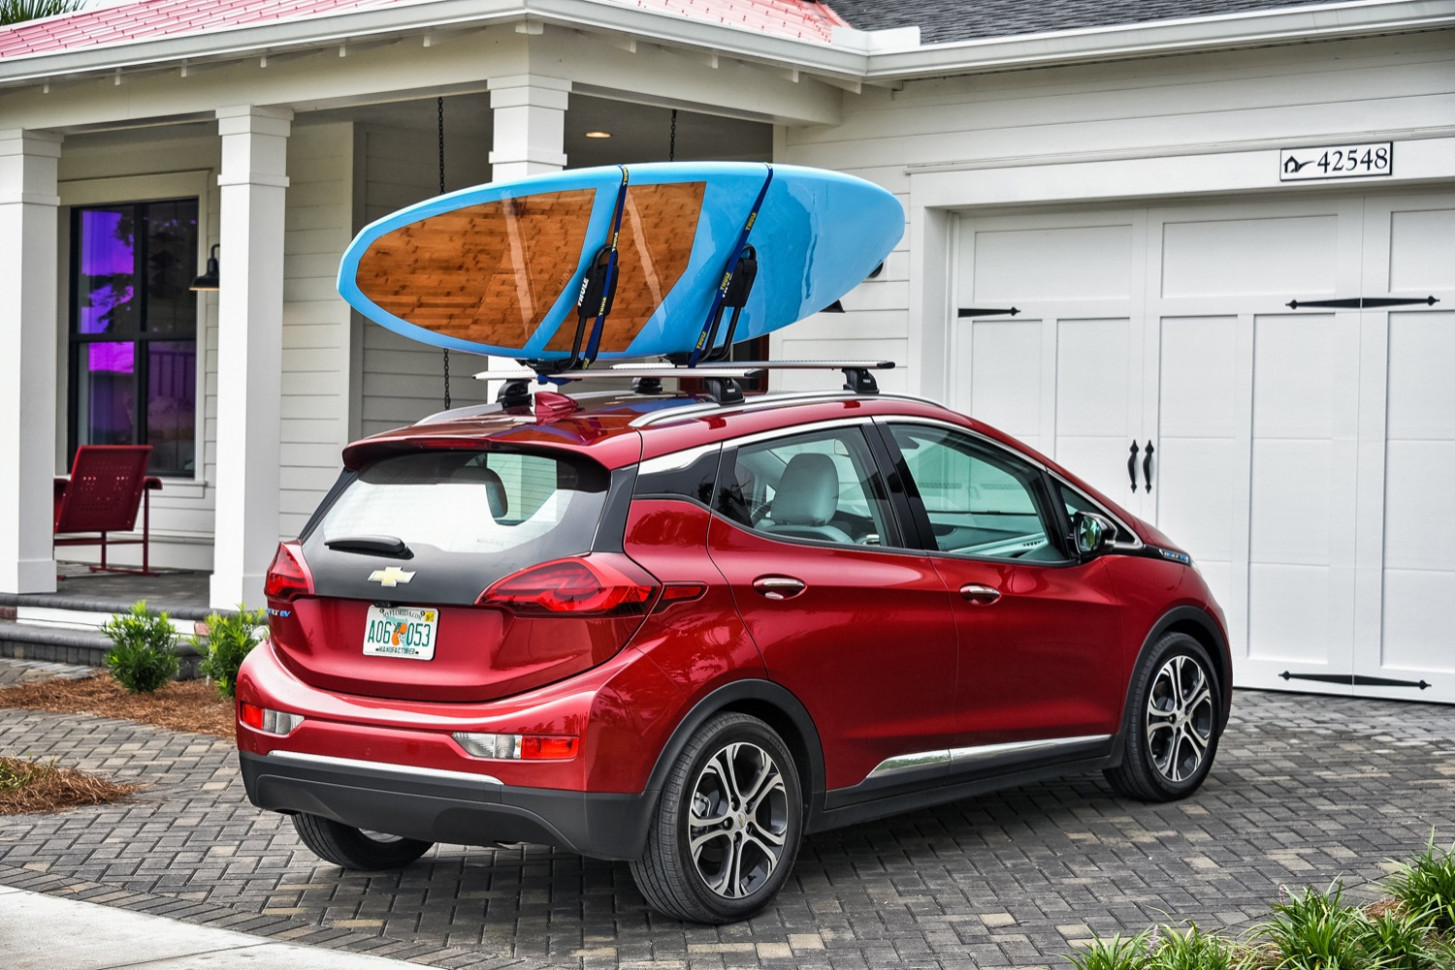 Style 2022 Chevy Bolt